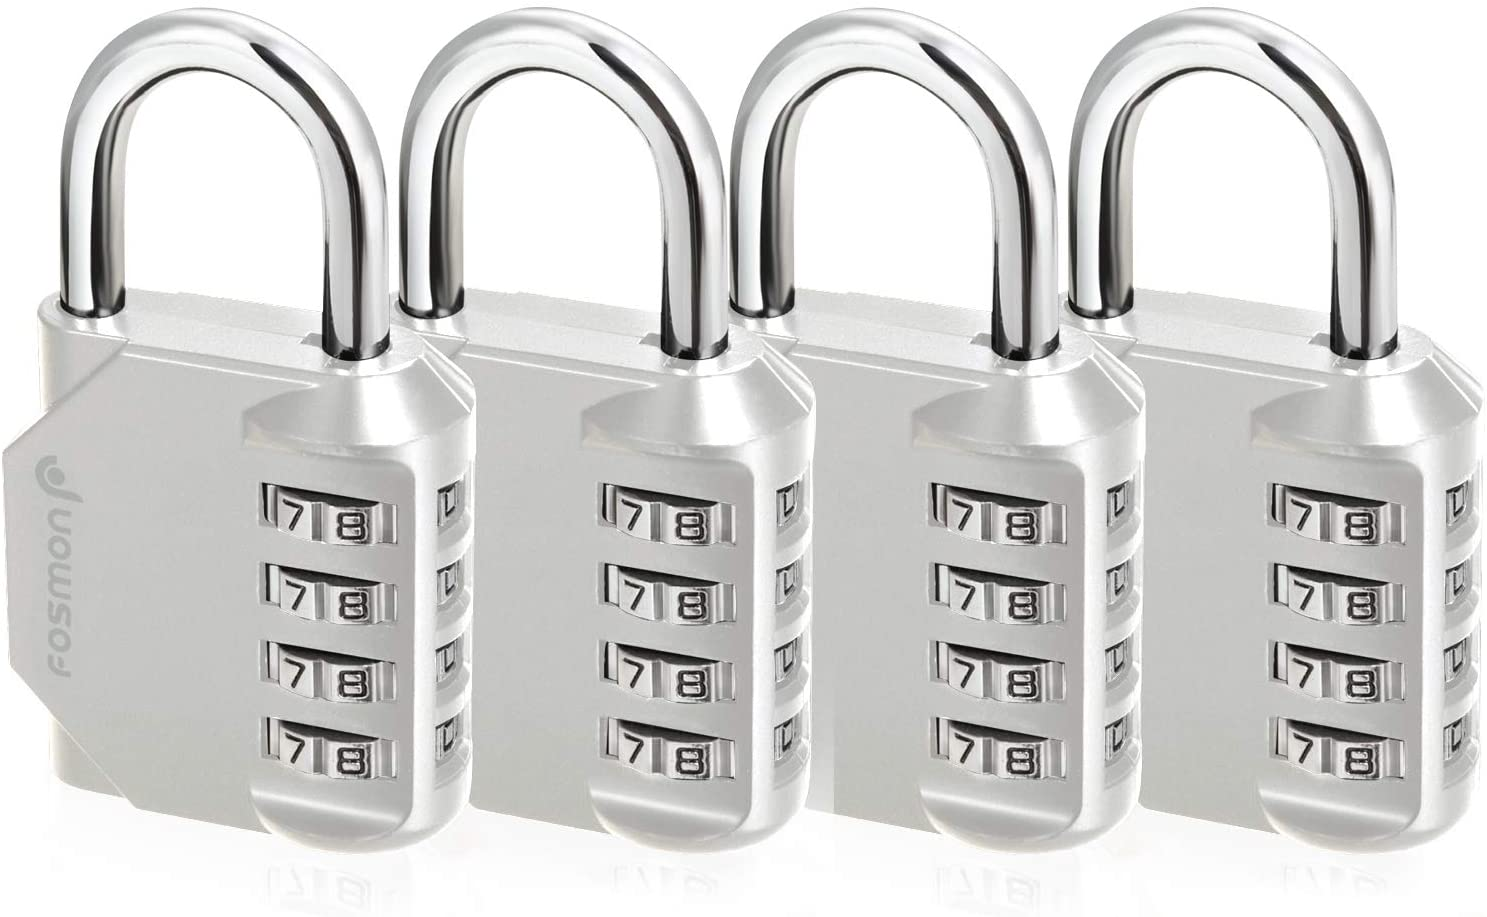 Fosmon Combination Lock (4 Pack) 4 Digit Padlock with Metal Alloy Body for School, Gym Locker, Gate, Bike Lock, Hasp and Storage - Silver